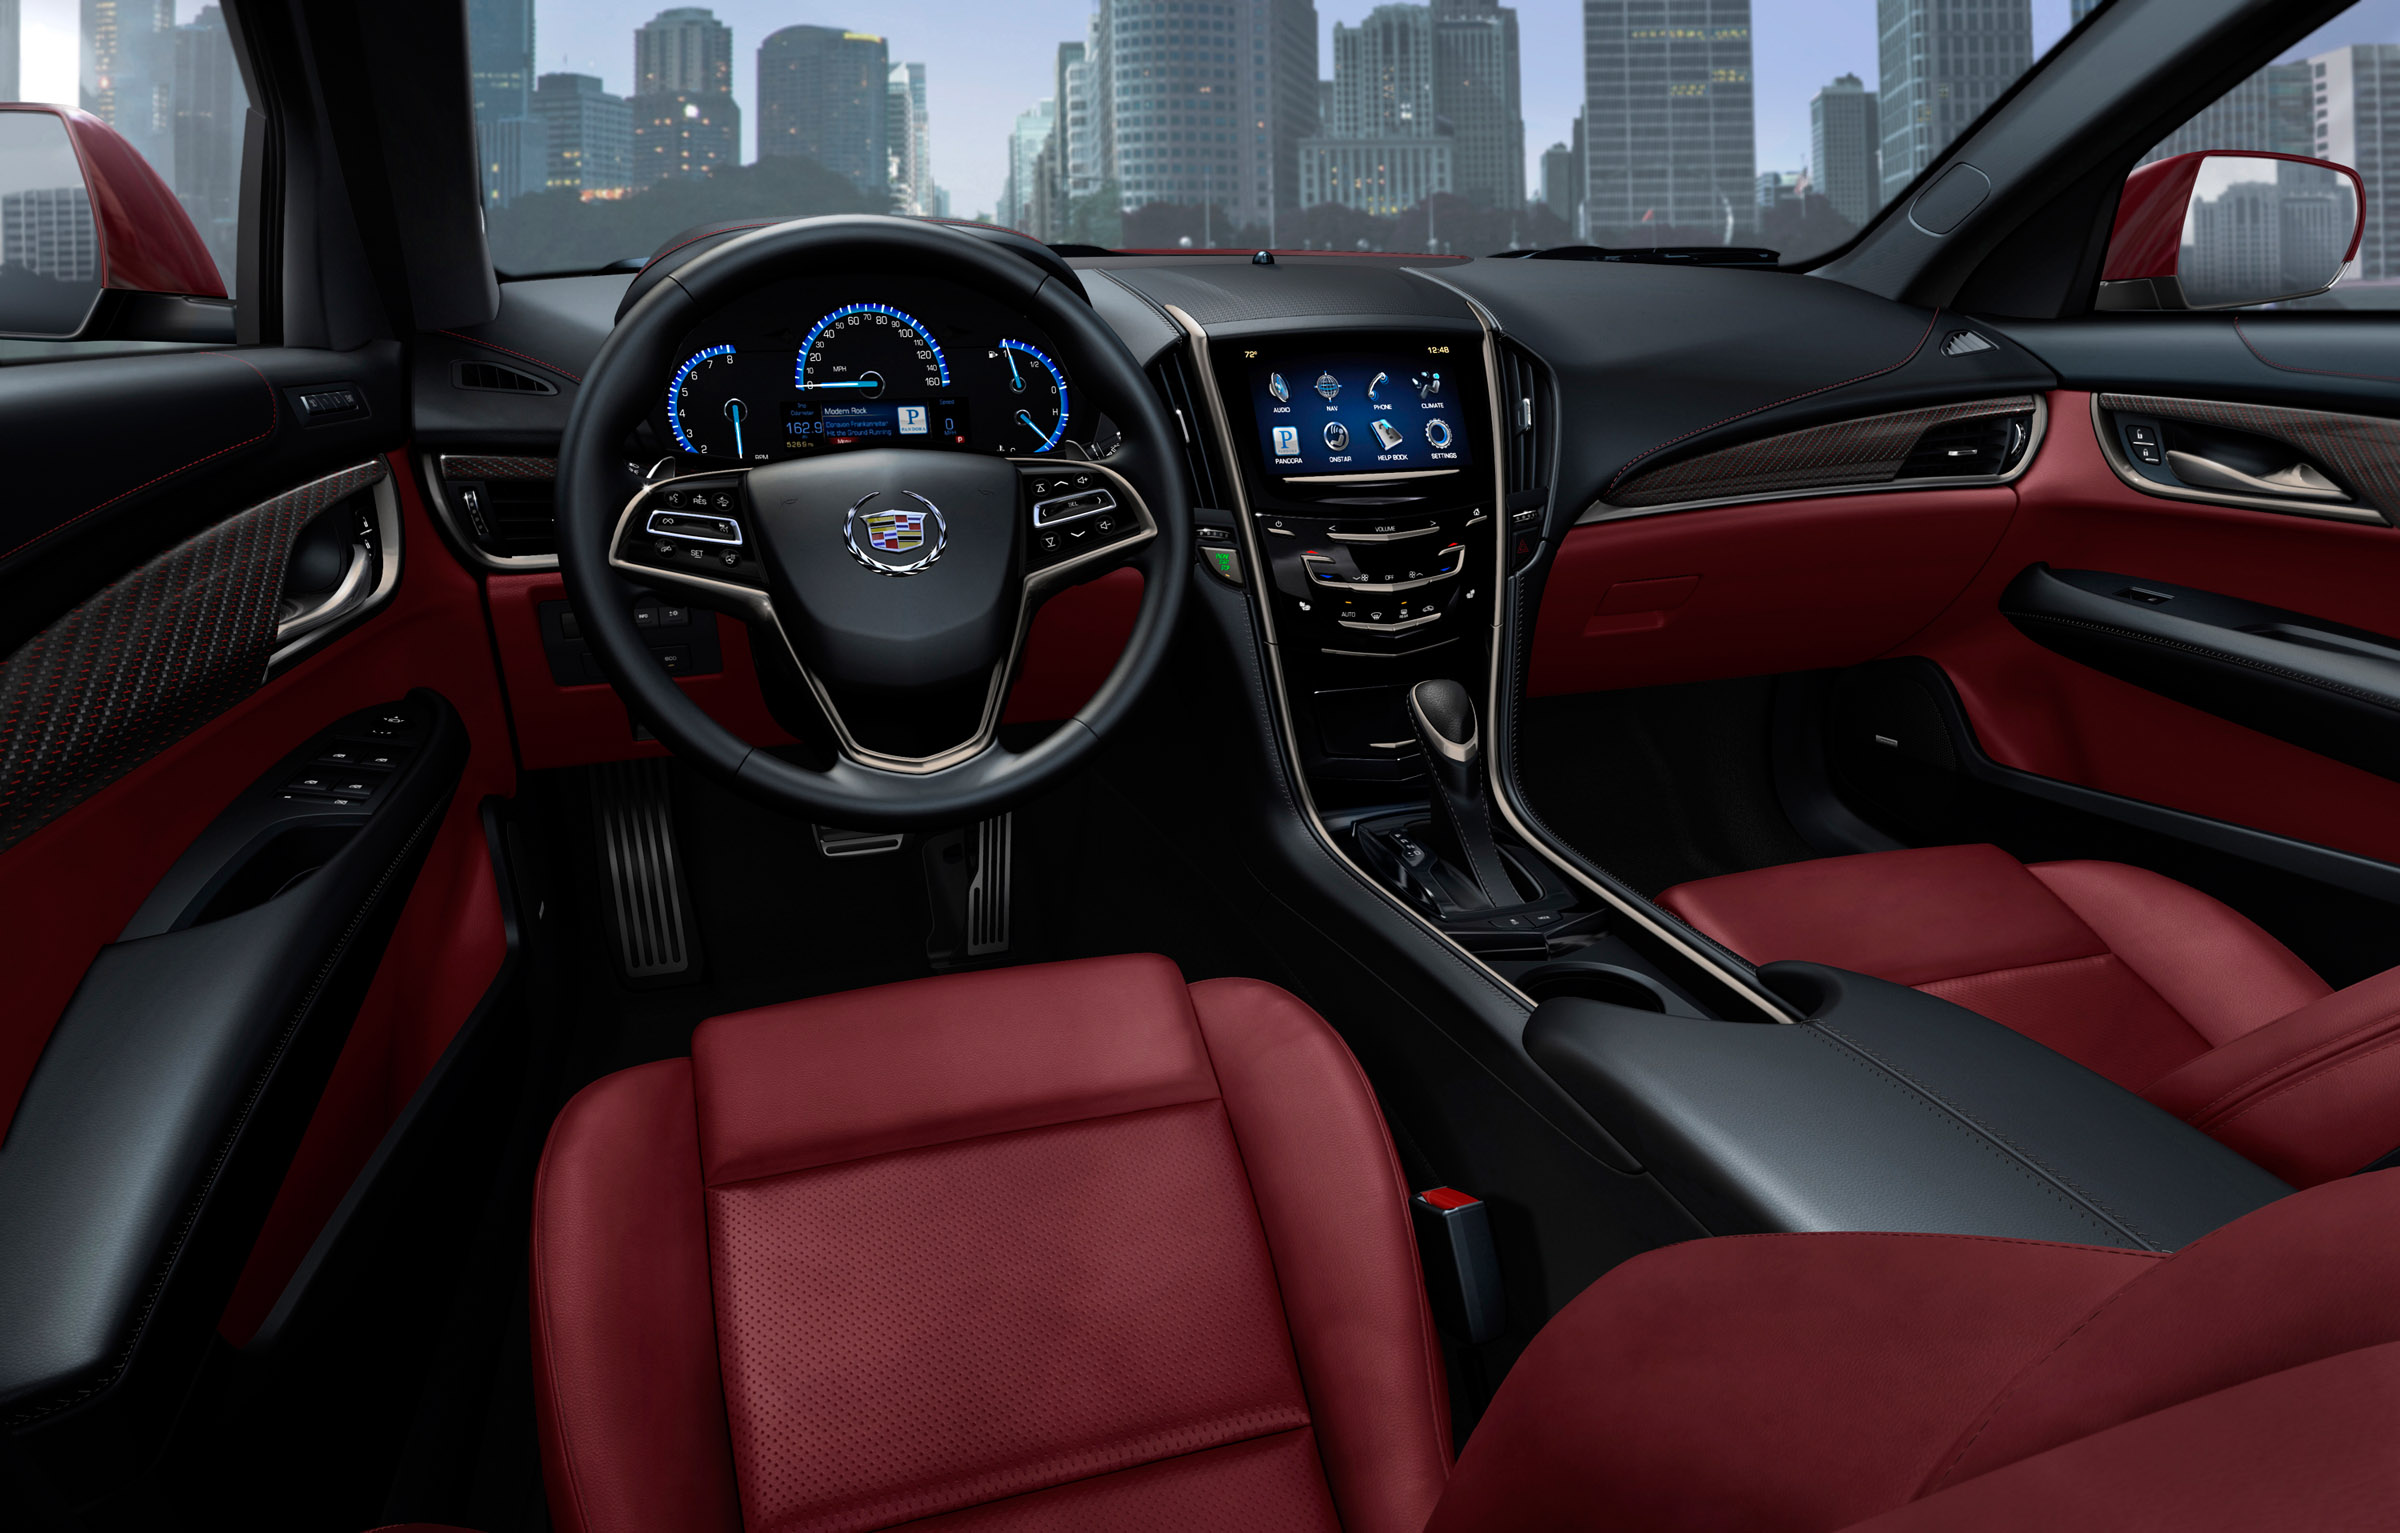 d equipped coupe fast buyers about a power cars in sedan v level sells tuned facts supercharged ats j called car performance articles the wagon with guides cadillac and trim is cts